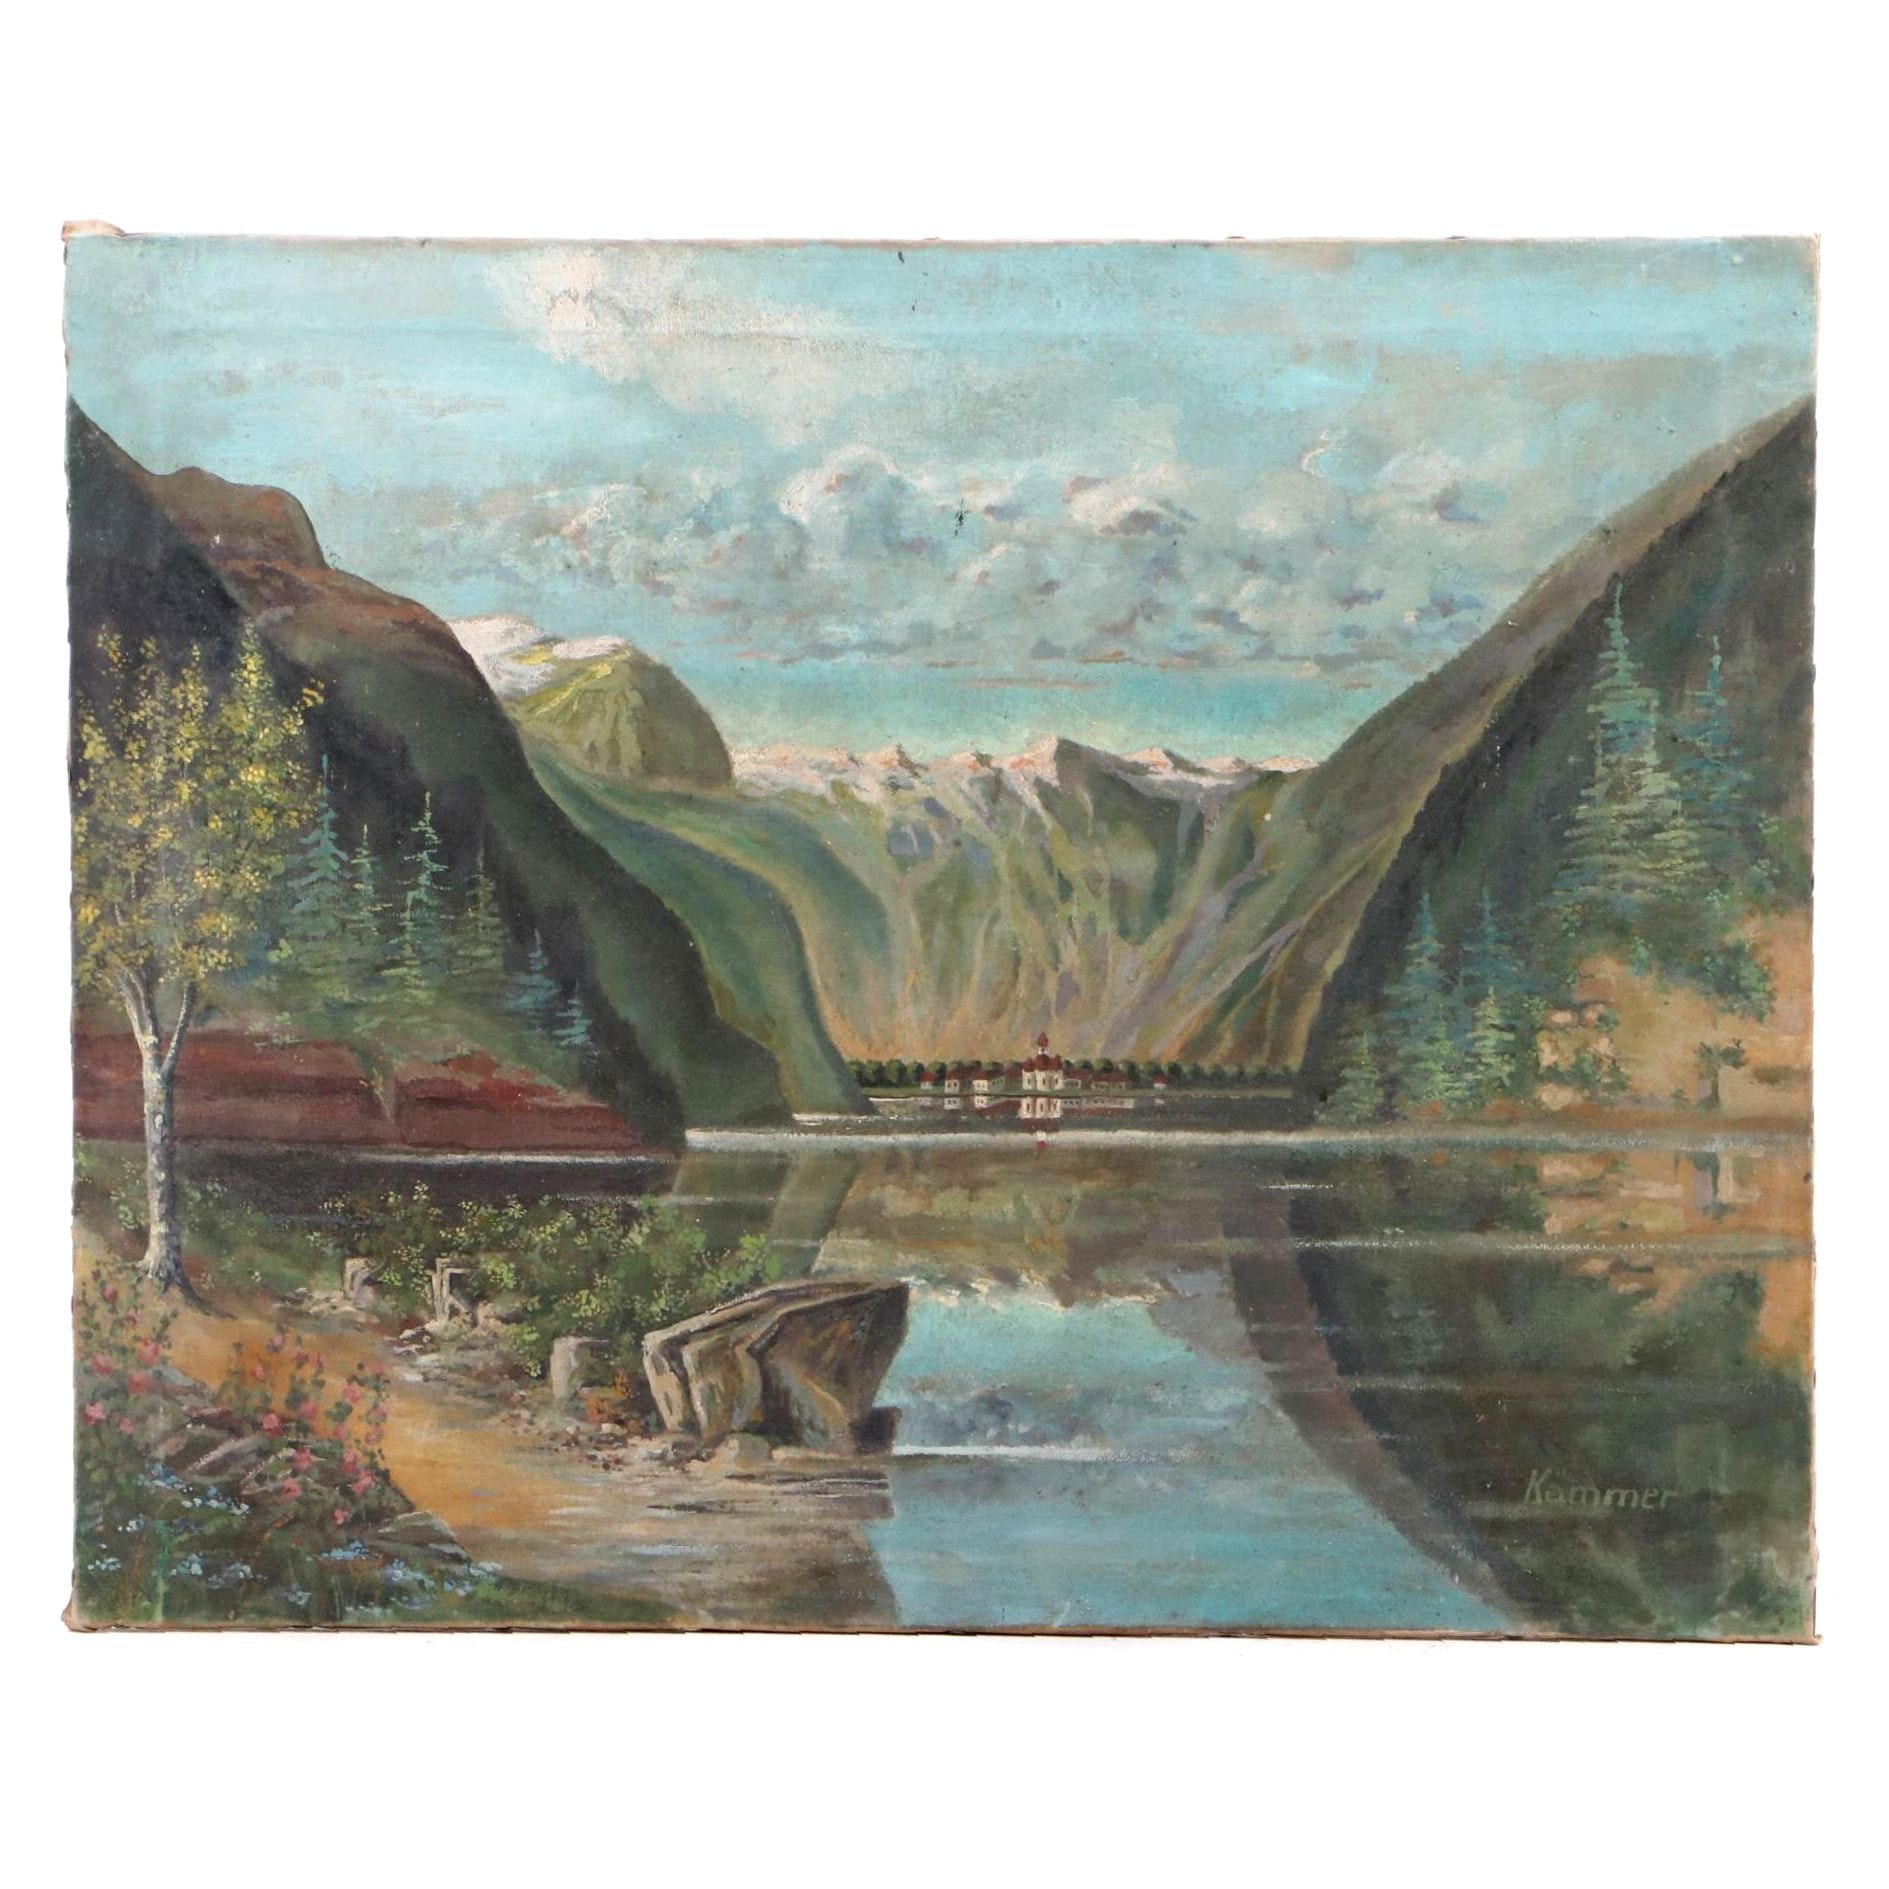 Kämmer Oil Painting of Alpine Lake Scene